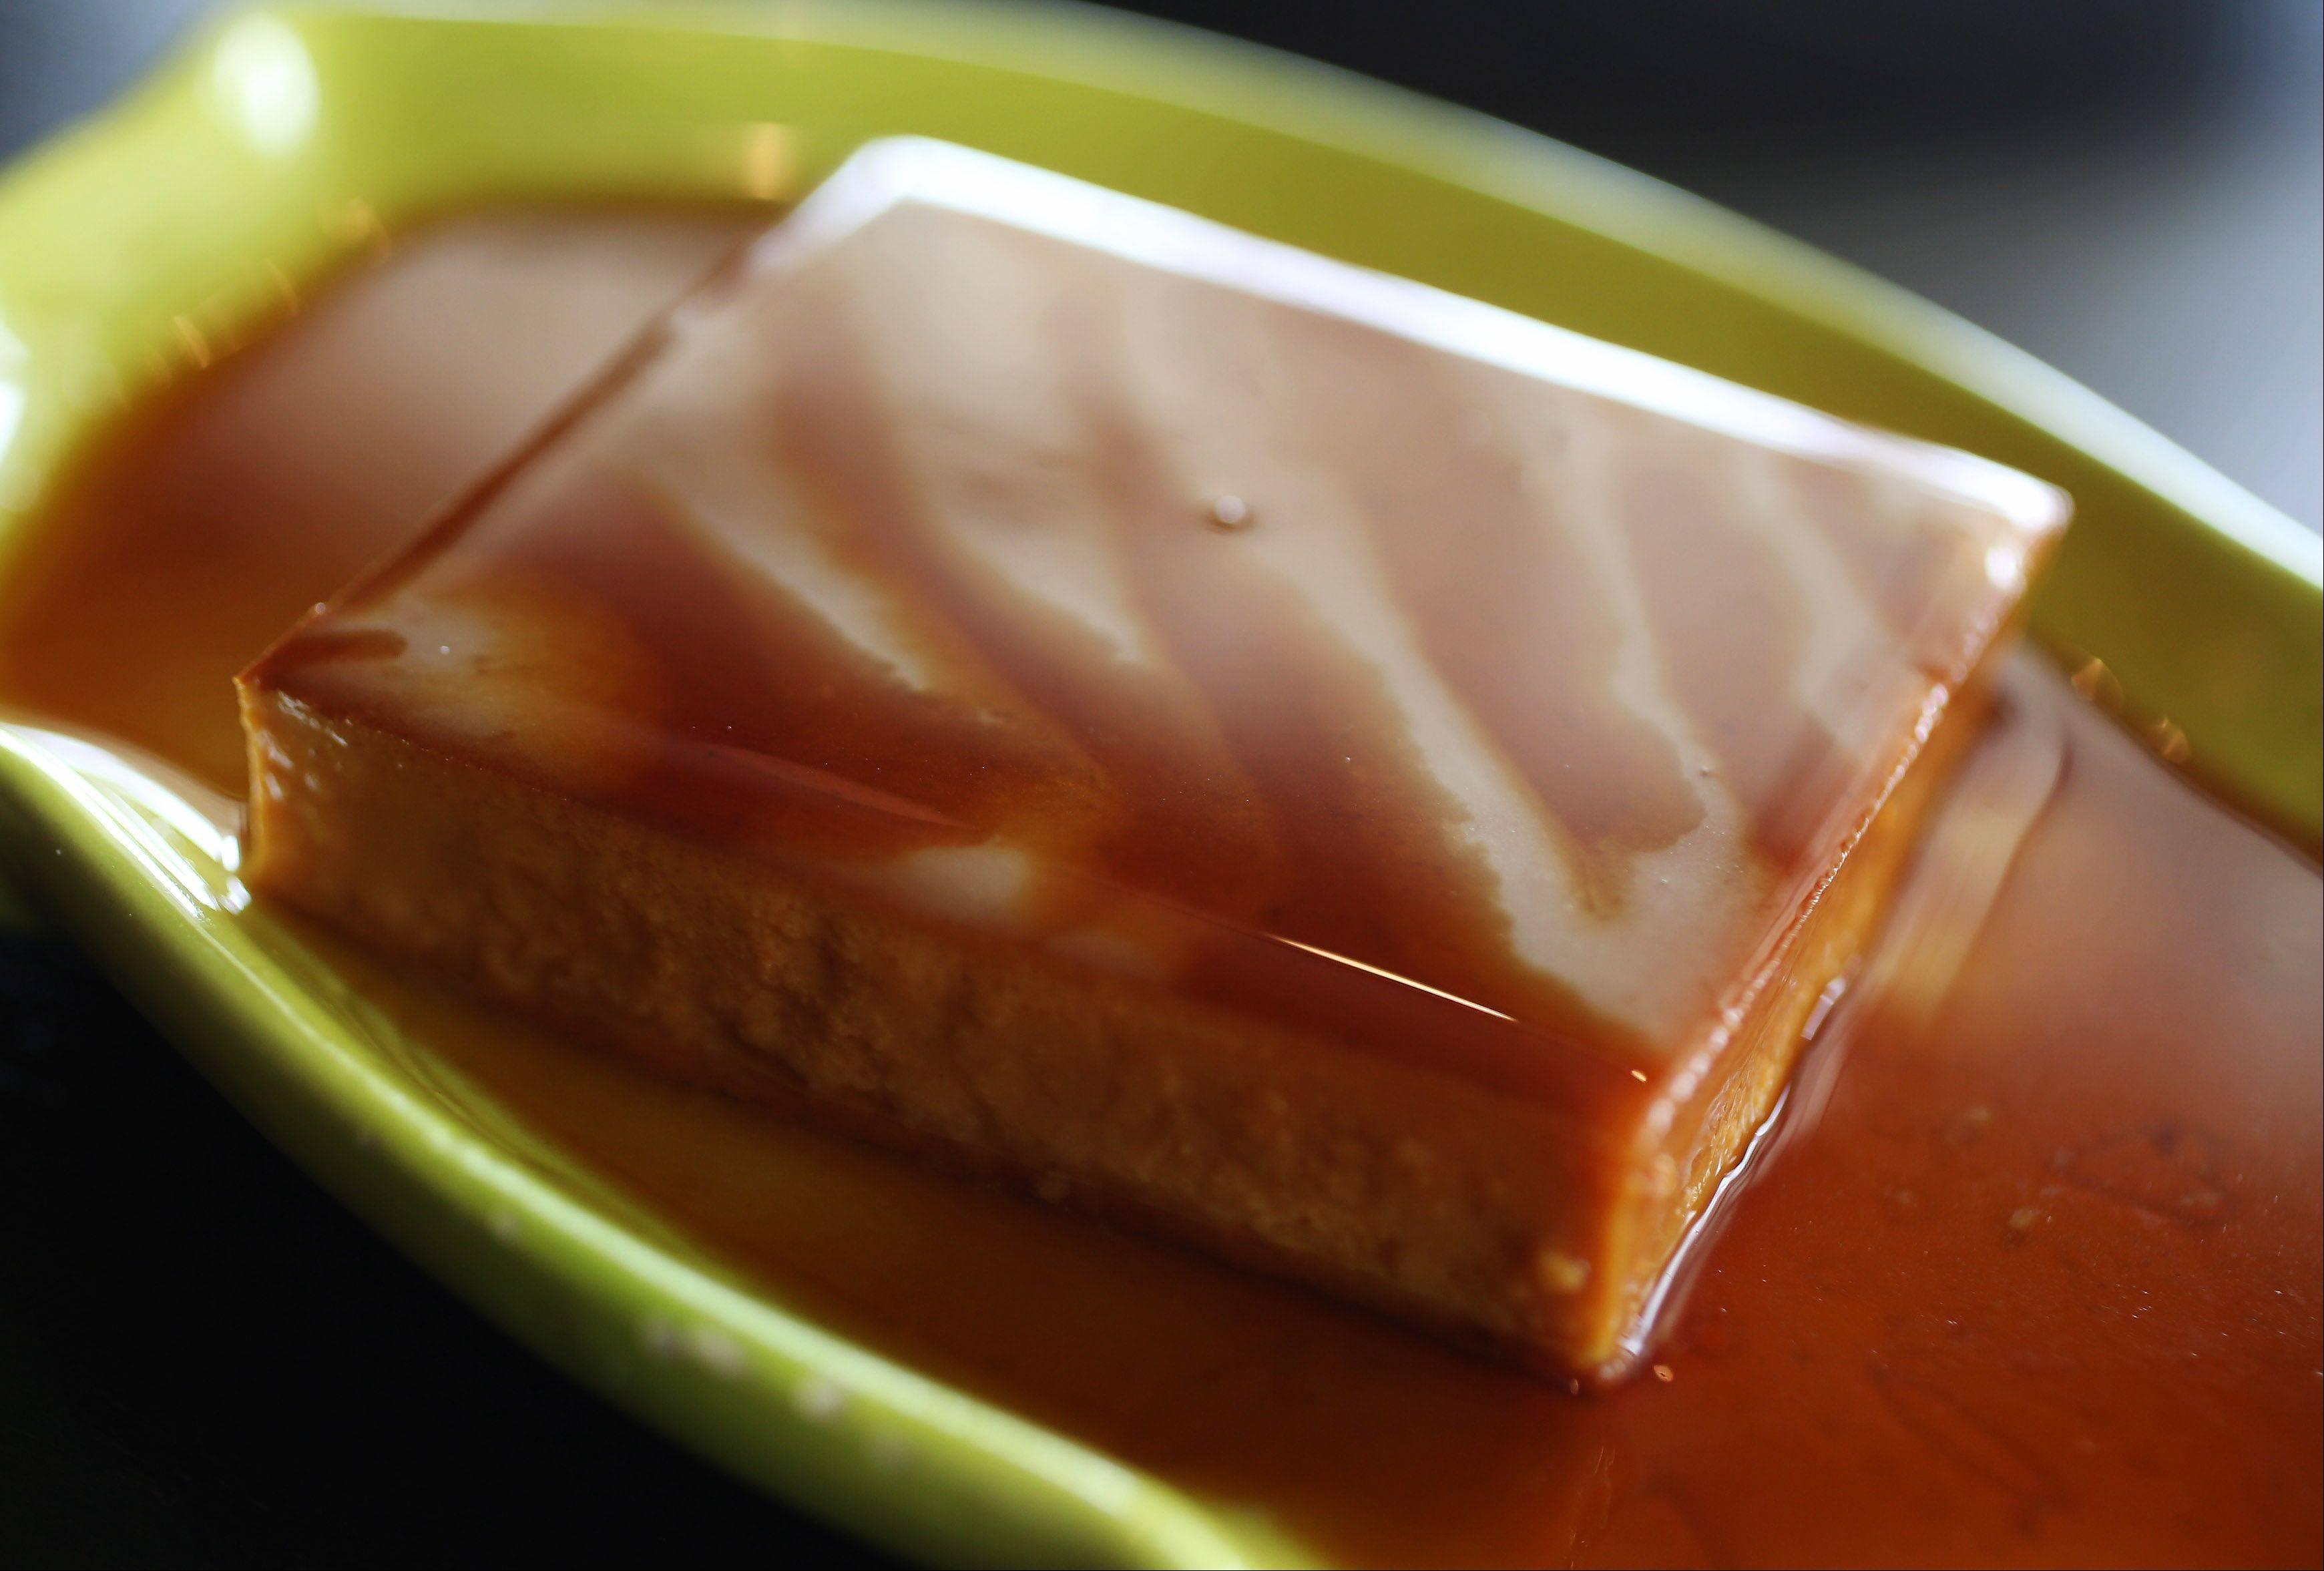 The caramel-sauced flan at Lulo's Cuban Cafe in Grayslake is the best around.